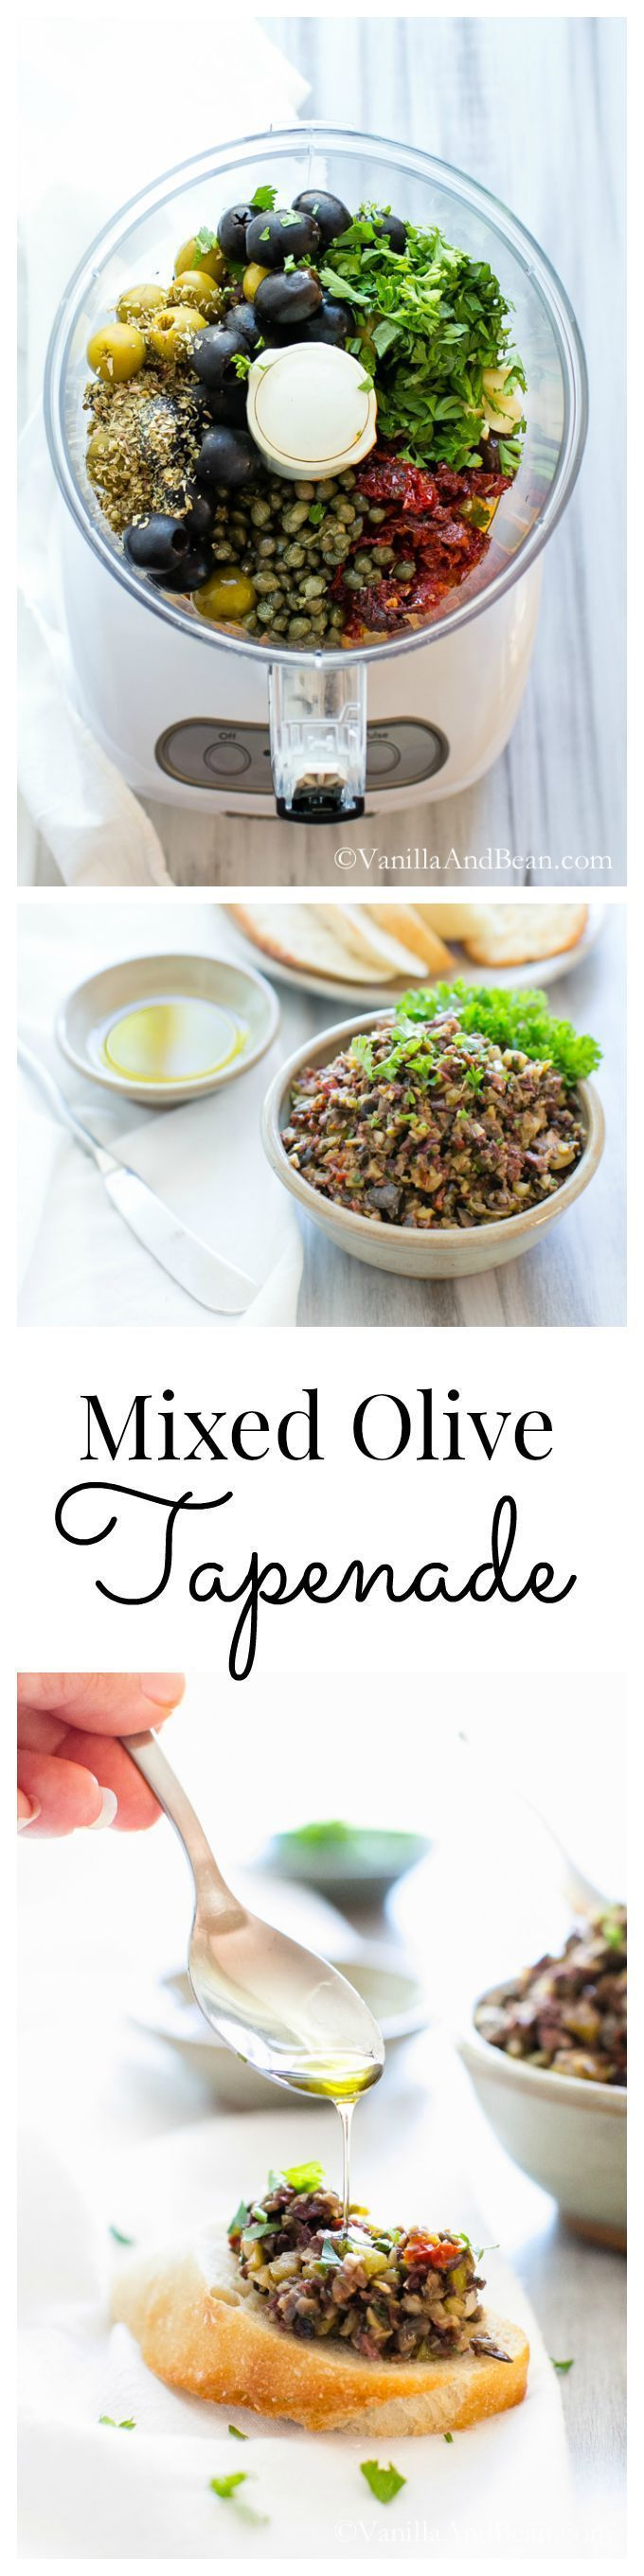 Garlicky, briny and packed full of salty flavors, this appetizer, spread or relish comes together in 10 minutes; Mixed Olive Tapenade | Vegan + Gluten Free | Vanilla And Bean